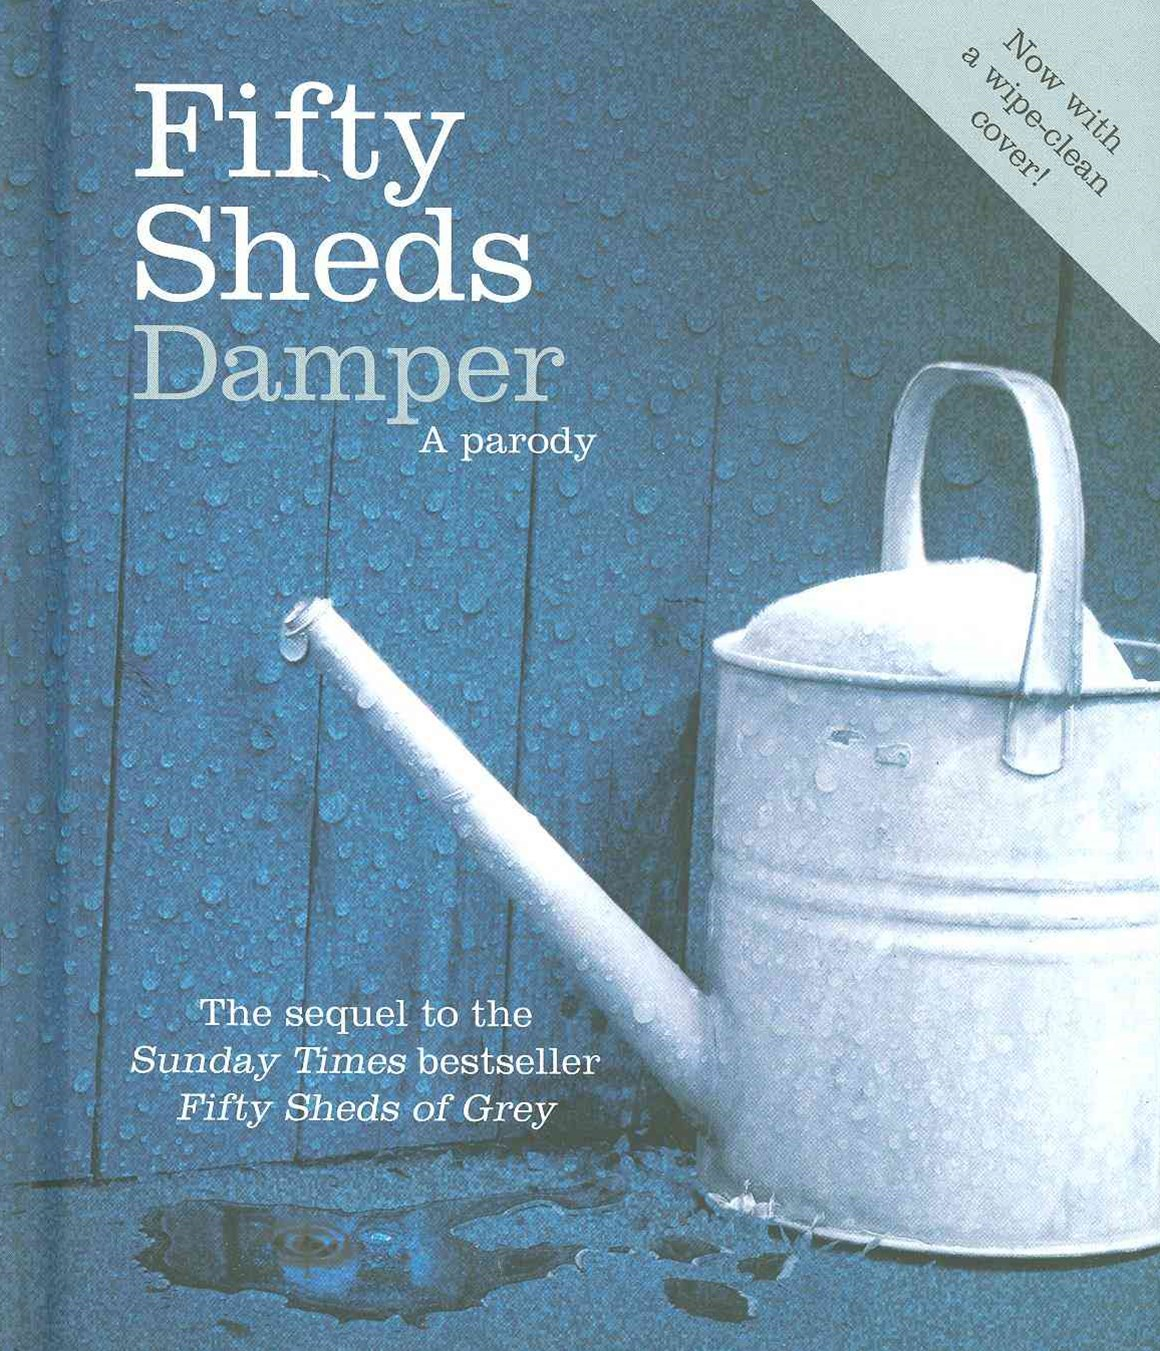 Fifty Shed Damper